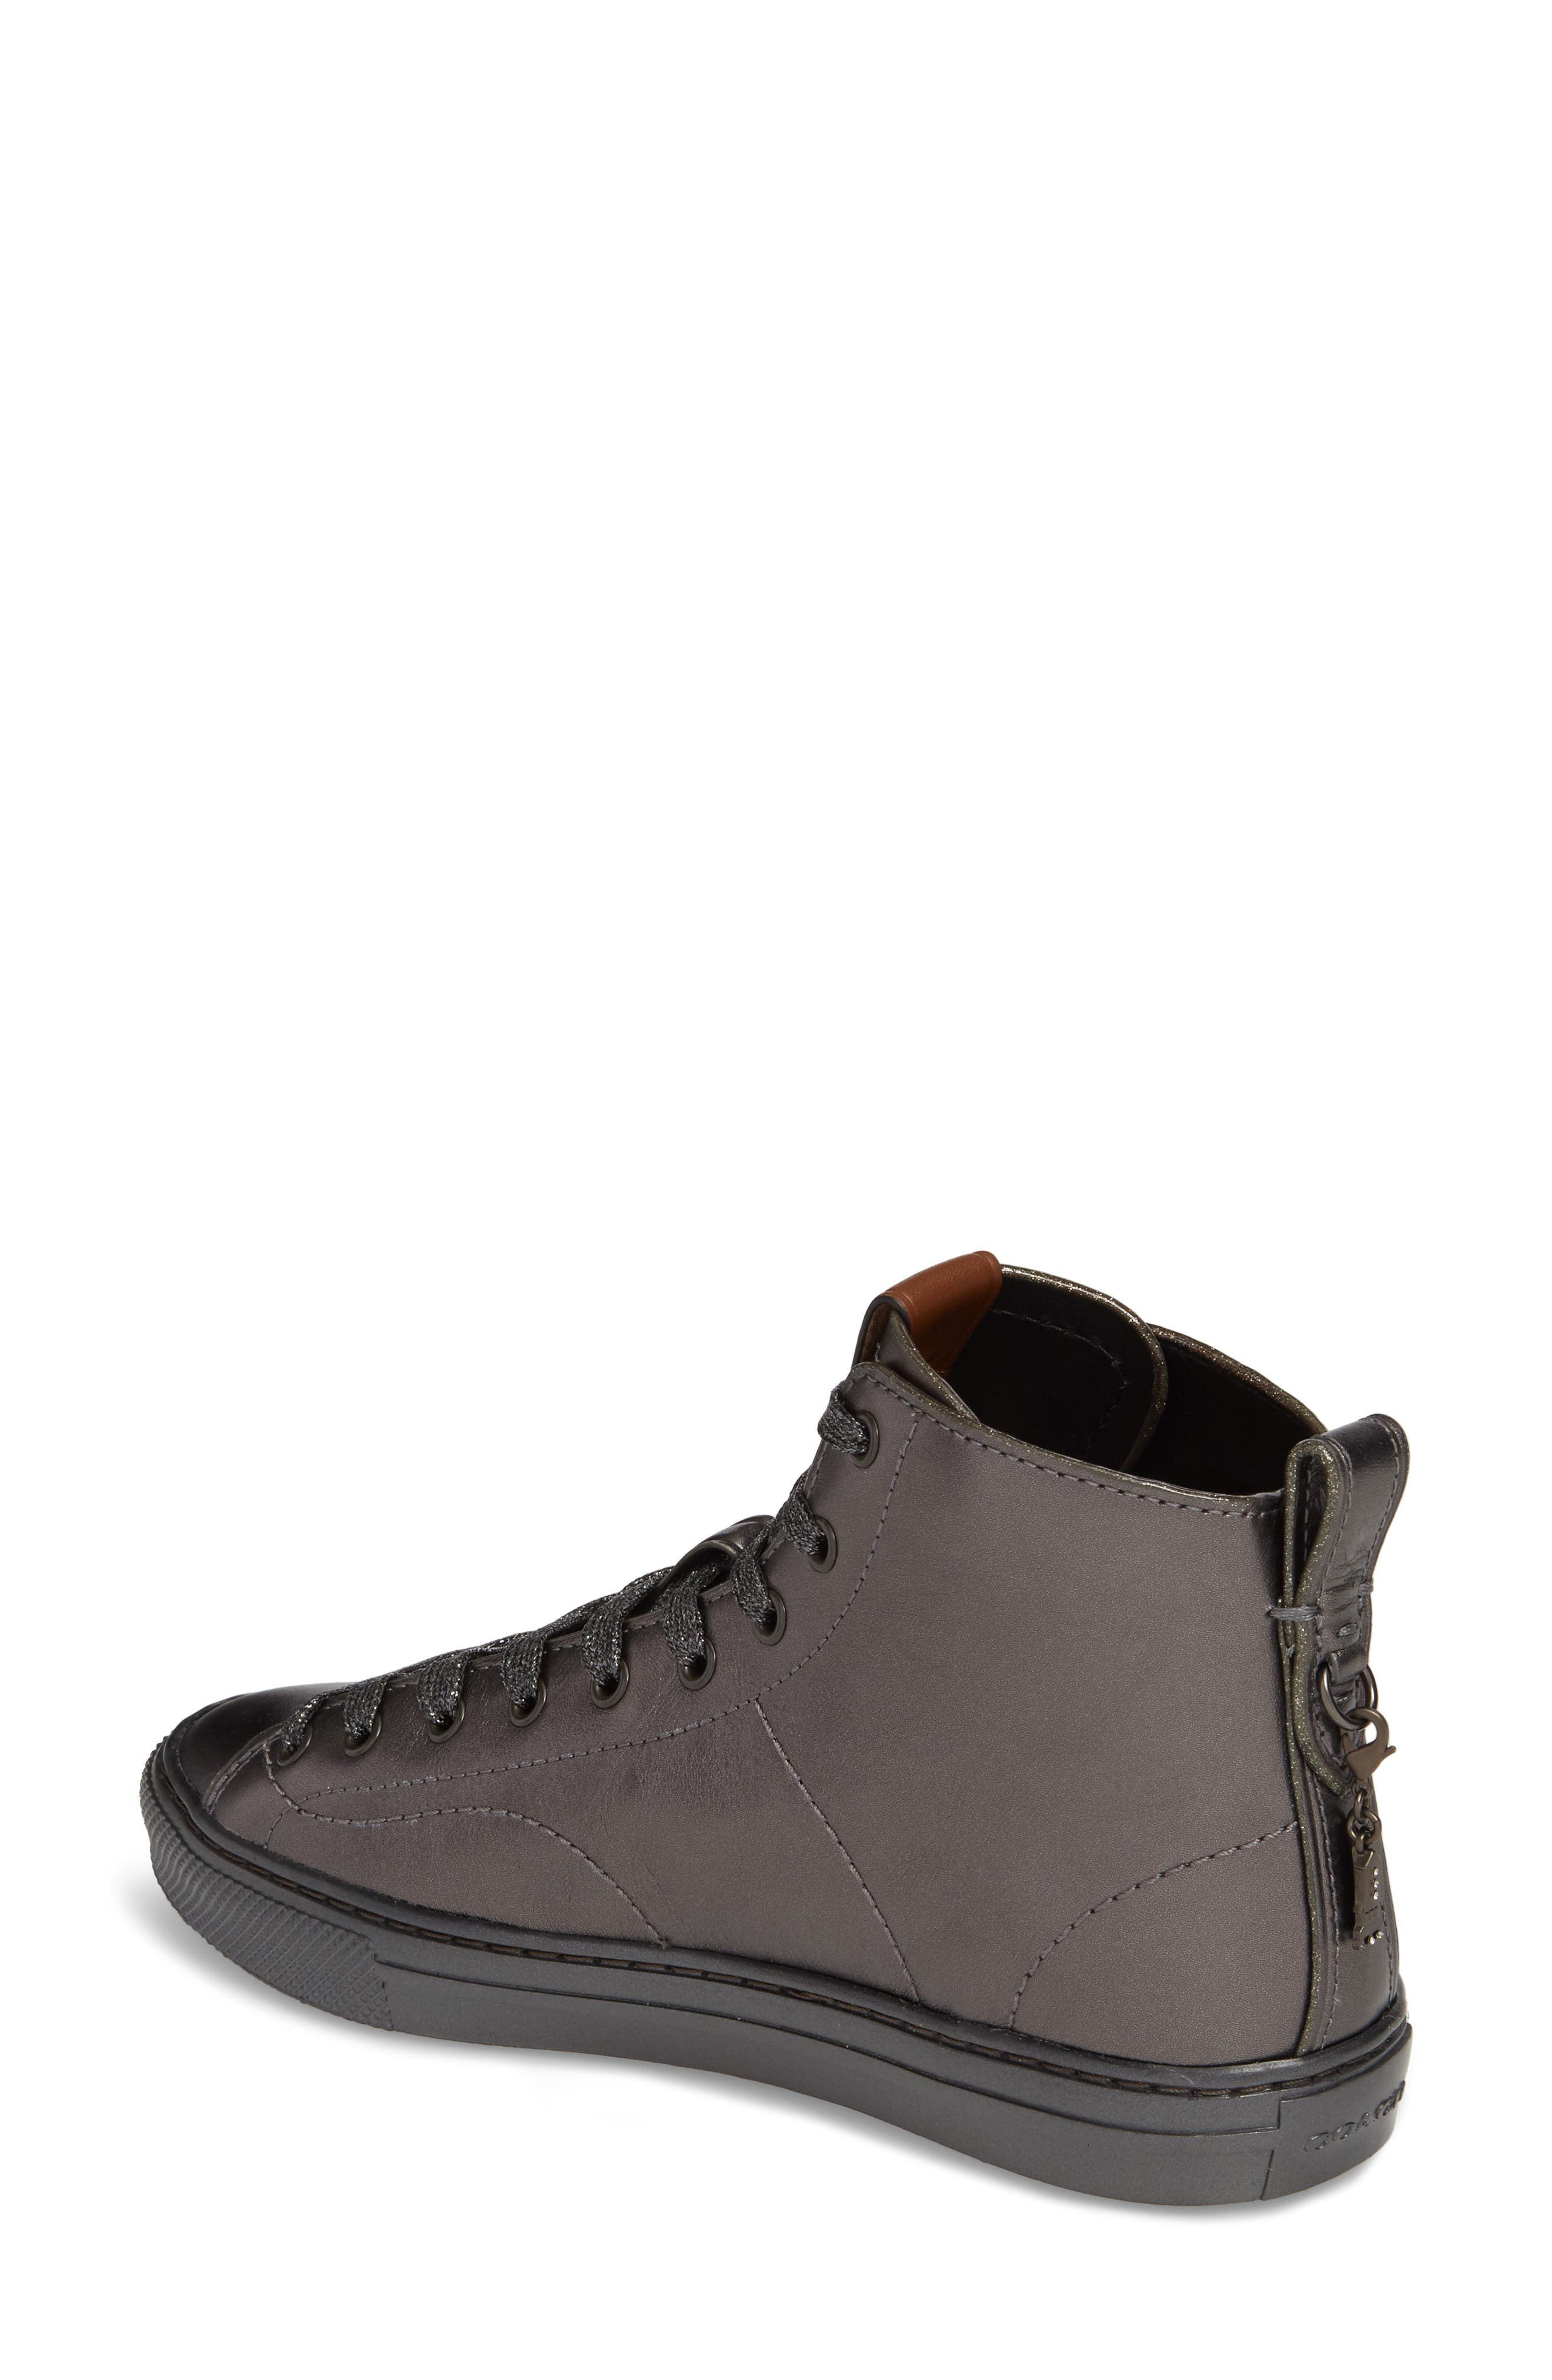 Patch High Top Sneaker,                             Alternate thumbnail 2, color,                             025